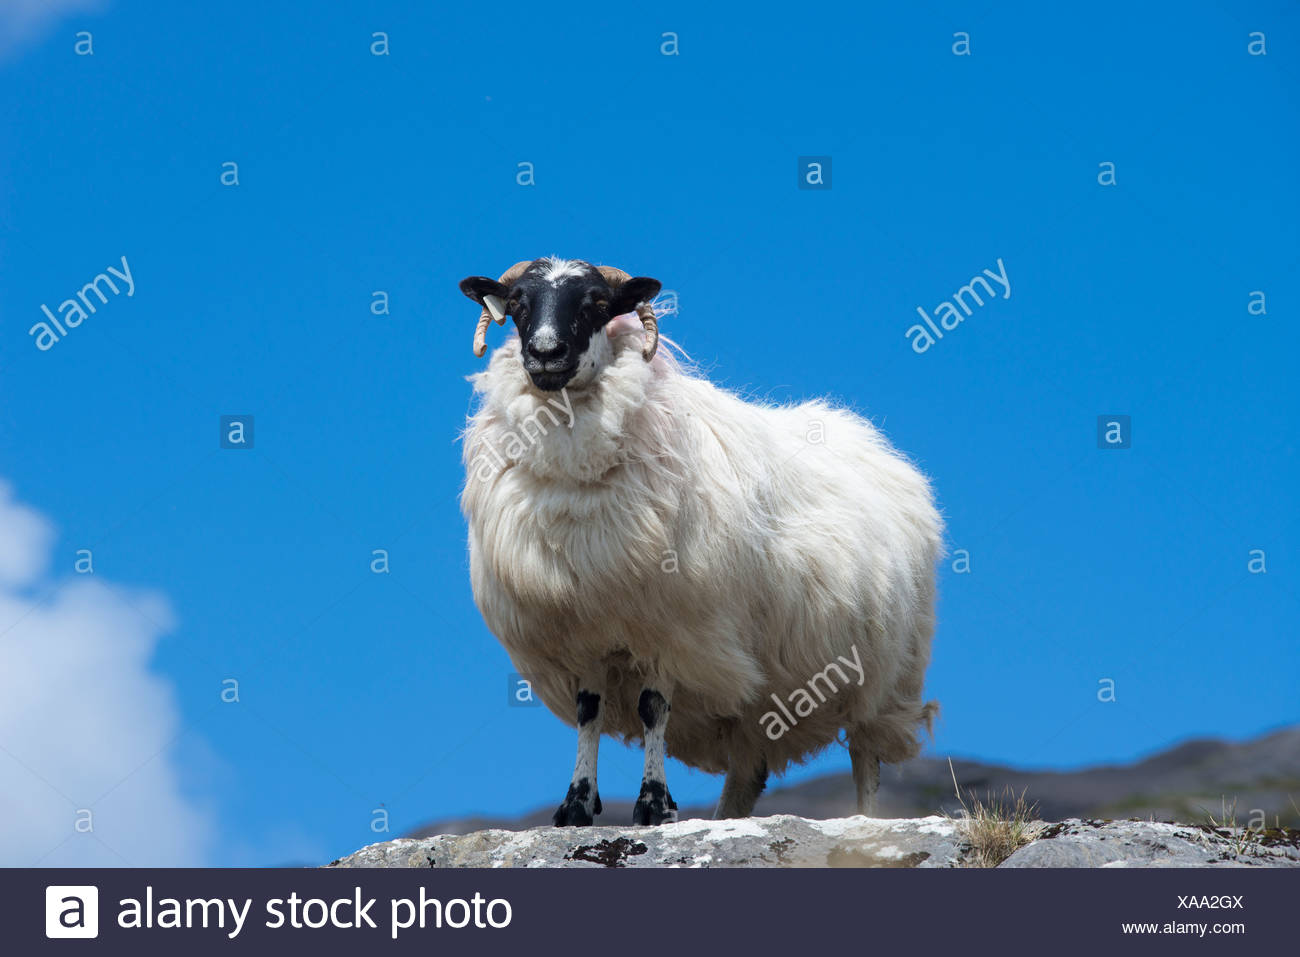 Sheep with a black head and horns, Ring of Beara, County Cork, Ireland, Europe - Stock Image